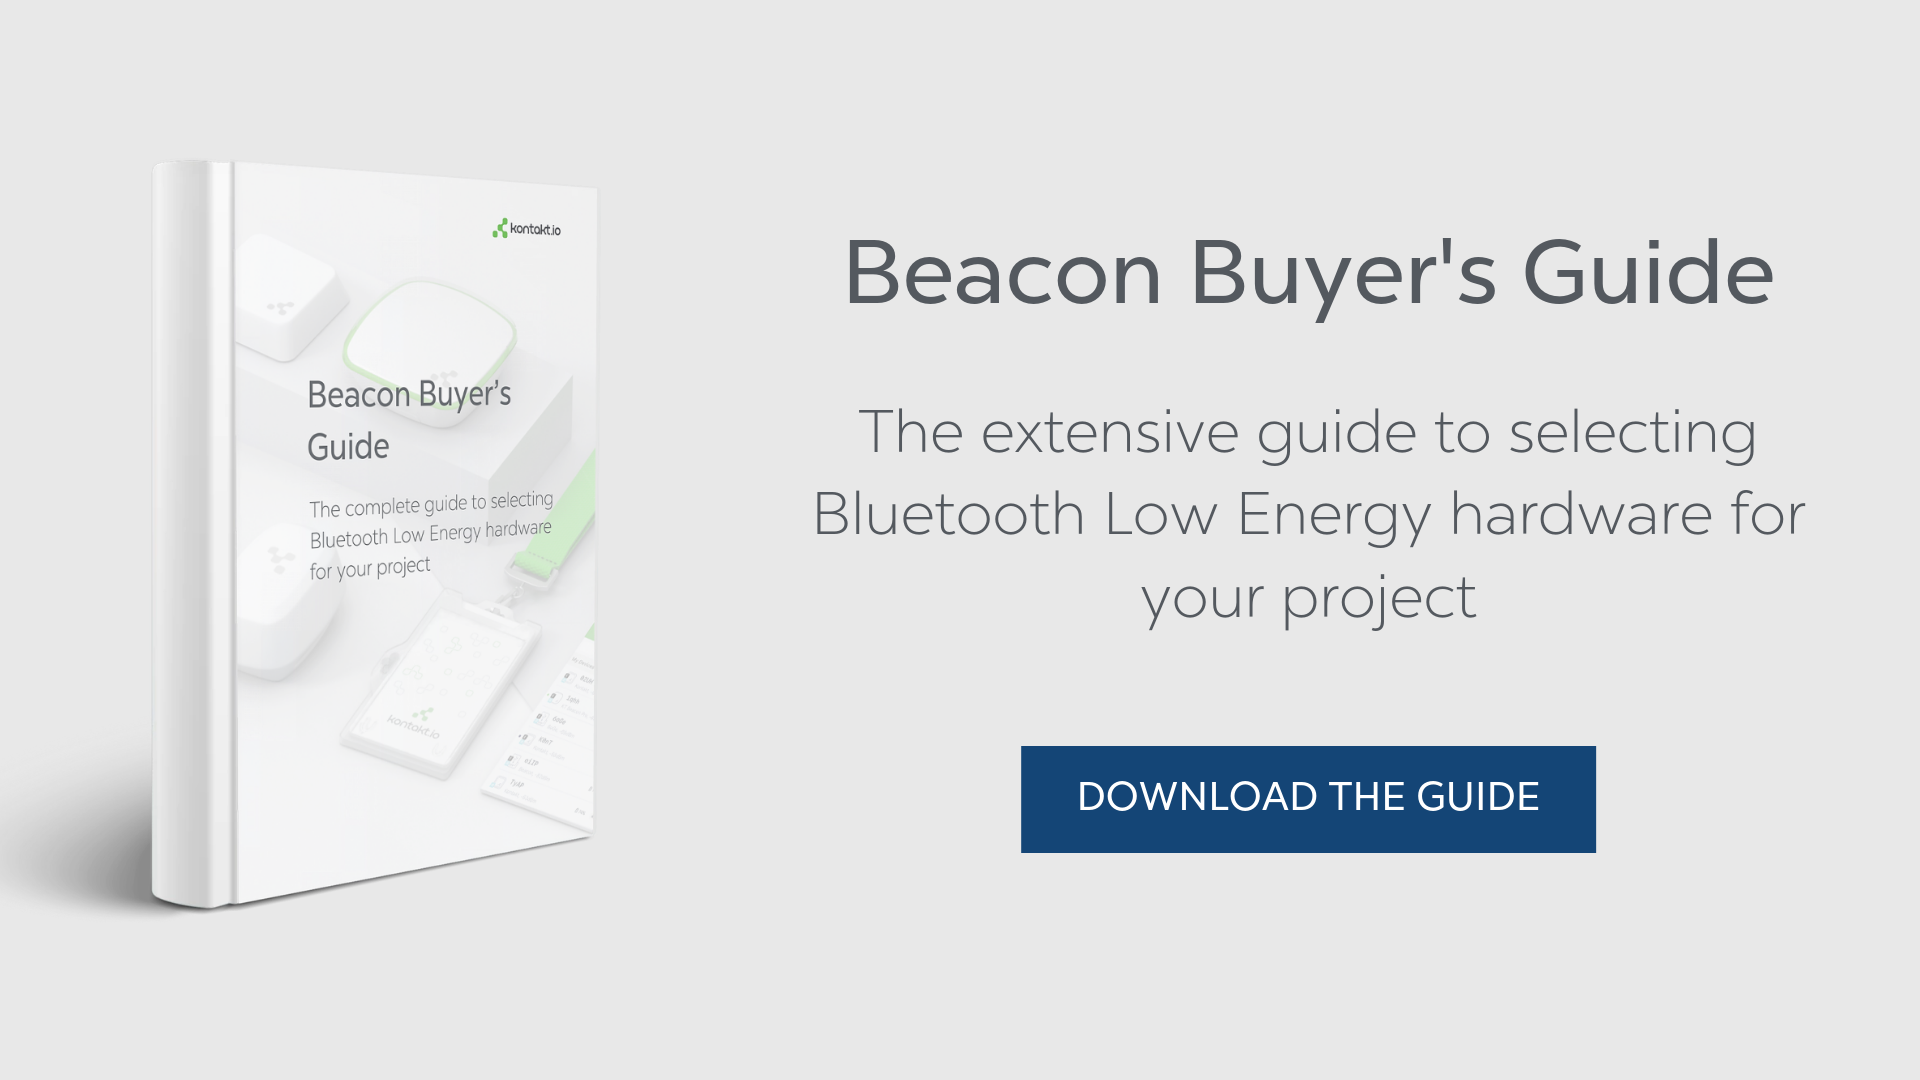 Beacon Buyer's Guide to select BLE hardware for your project Cold chains